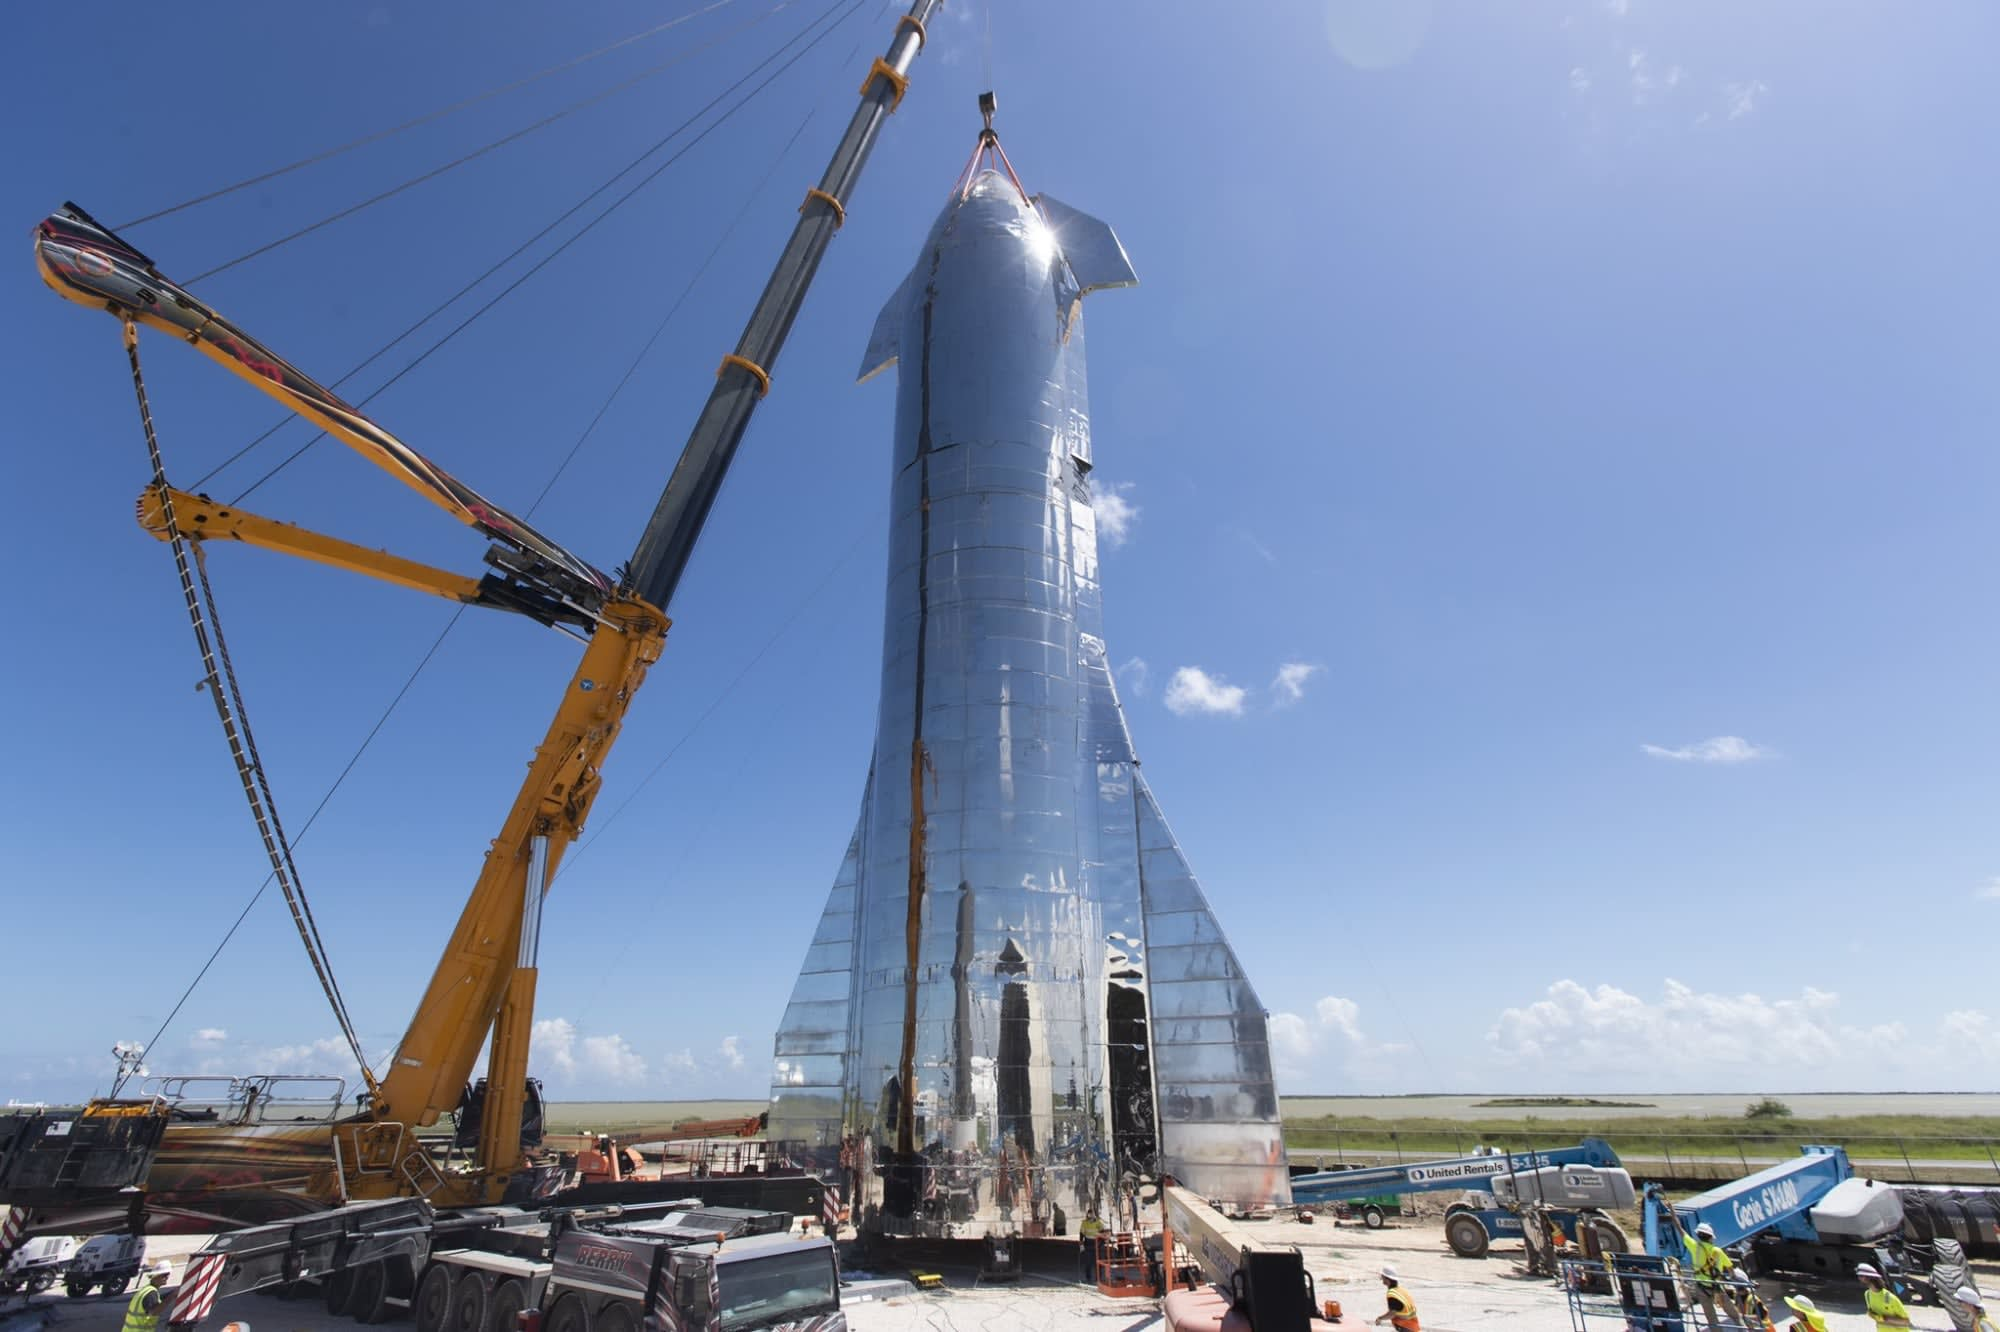 SpaceX begins construction of its next-generation Starship rockets